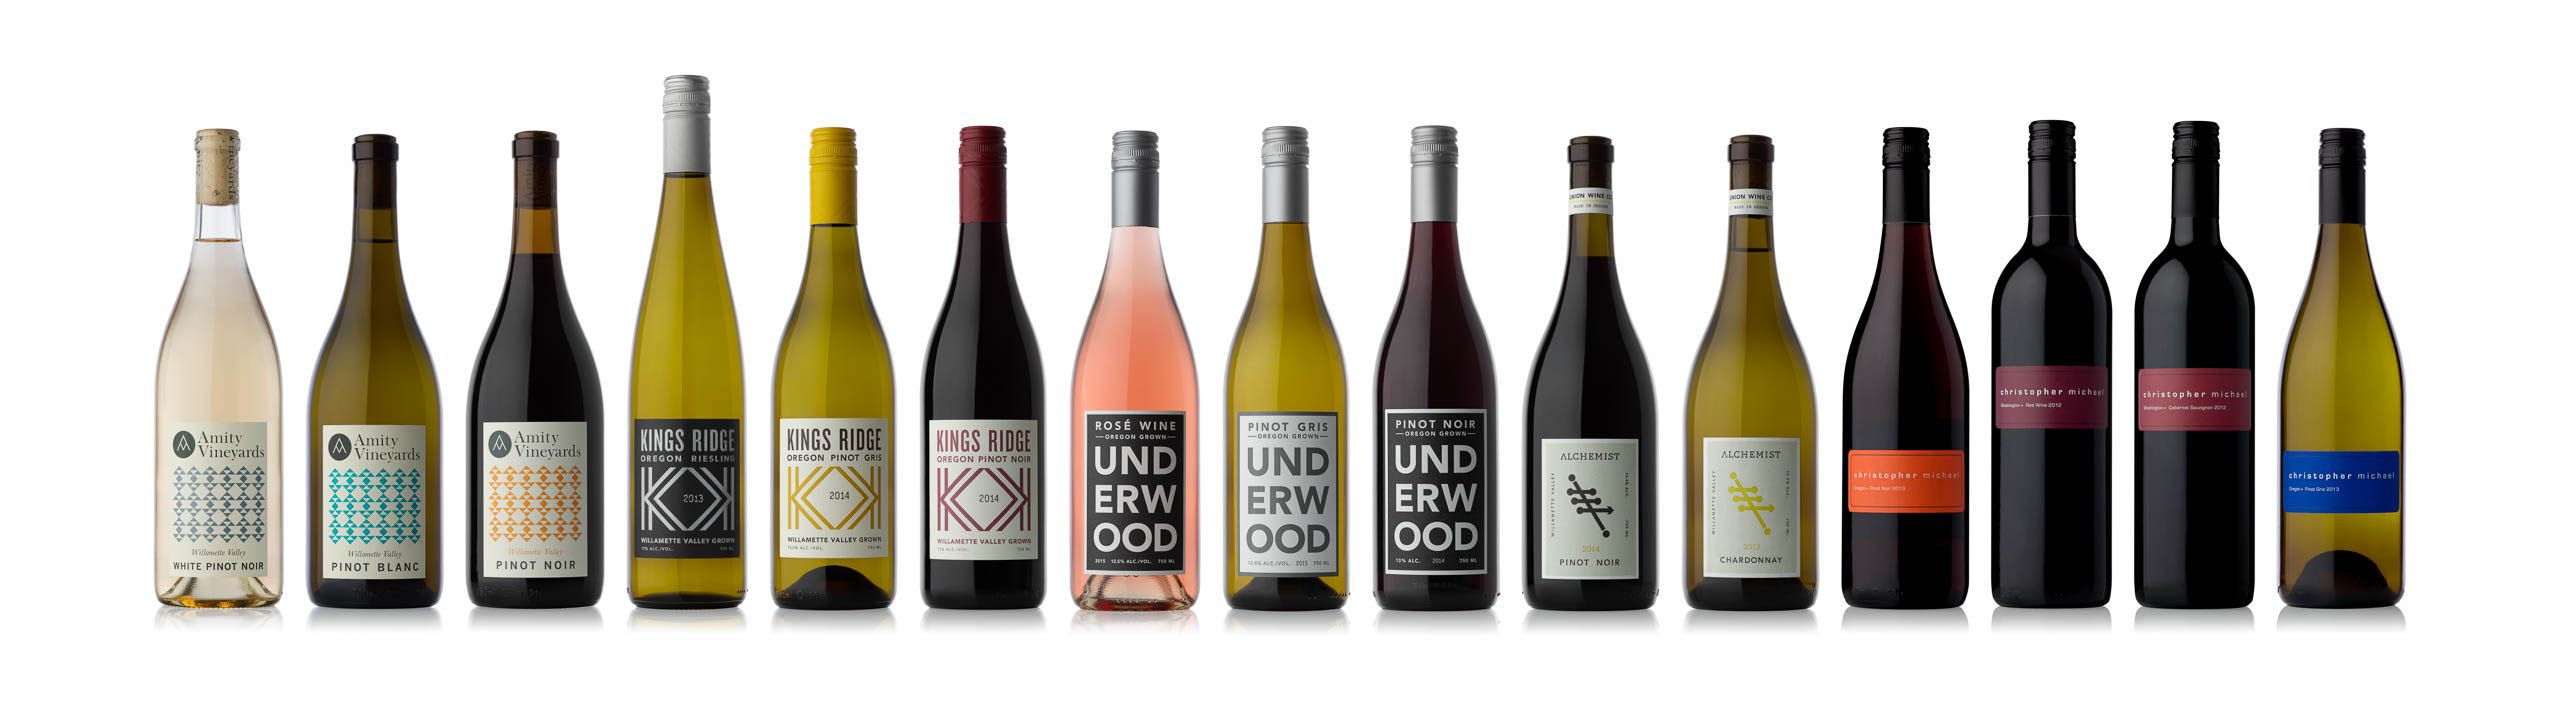 Amity, Kings Ridge, Underwood, Alchemist, and Christopher Michael wine bottles